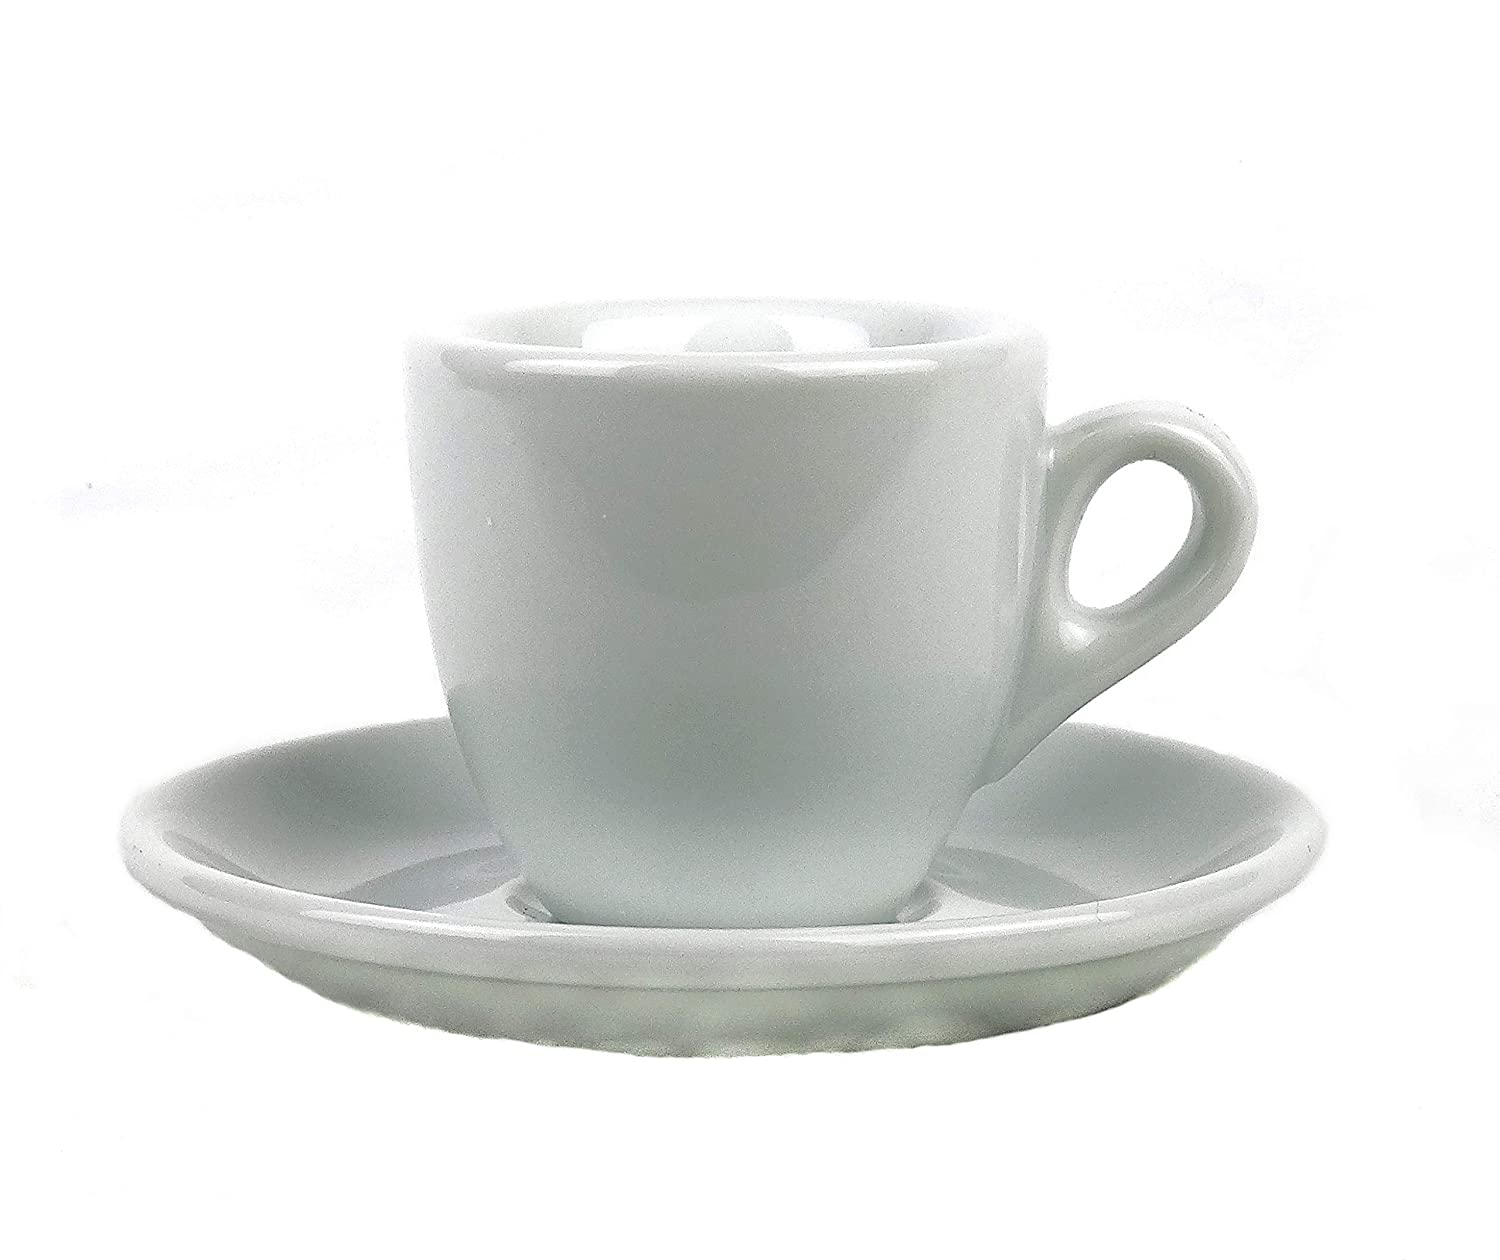 Extra Thick-walled Espresso Cup (1 Cup)/(6 Cups & Saucers) Moka Consorten